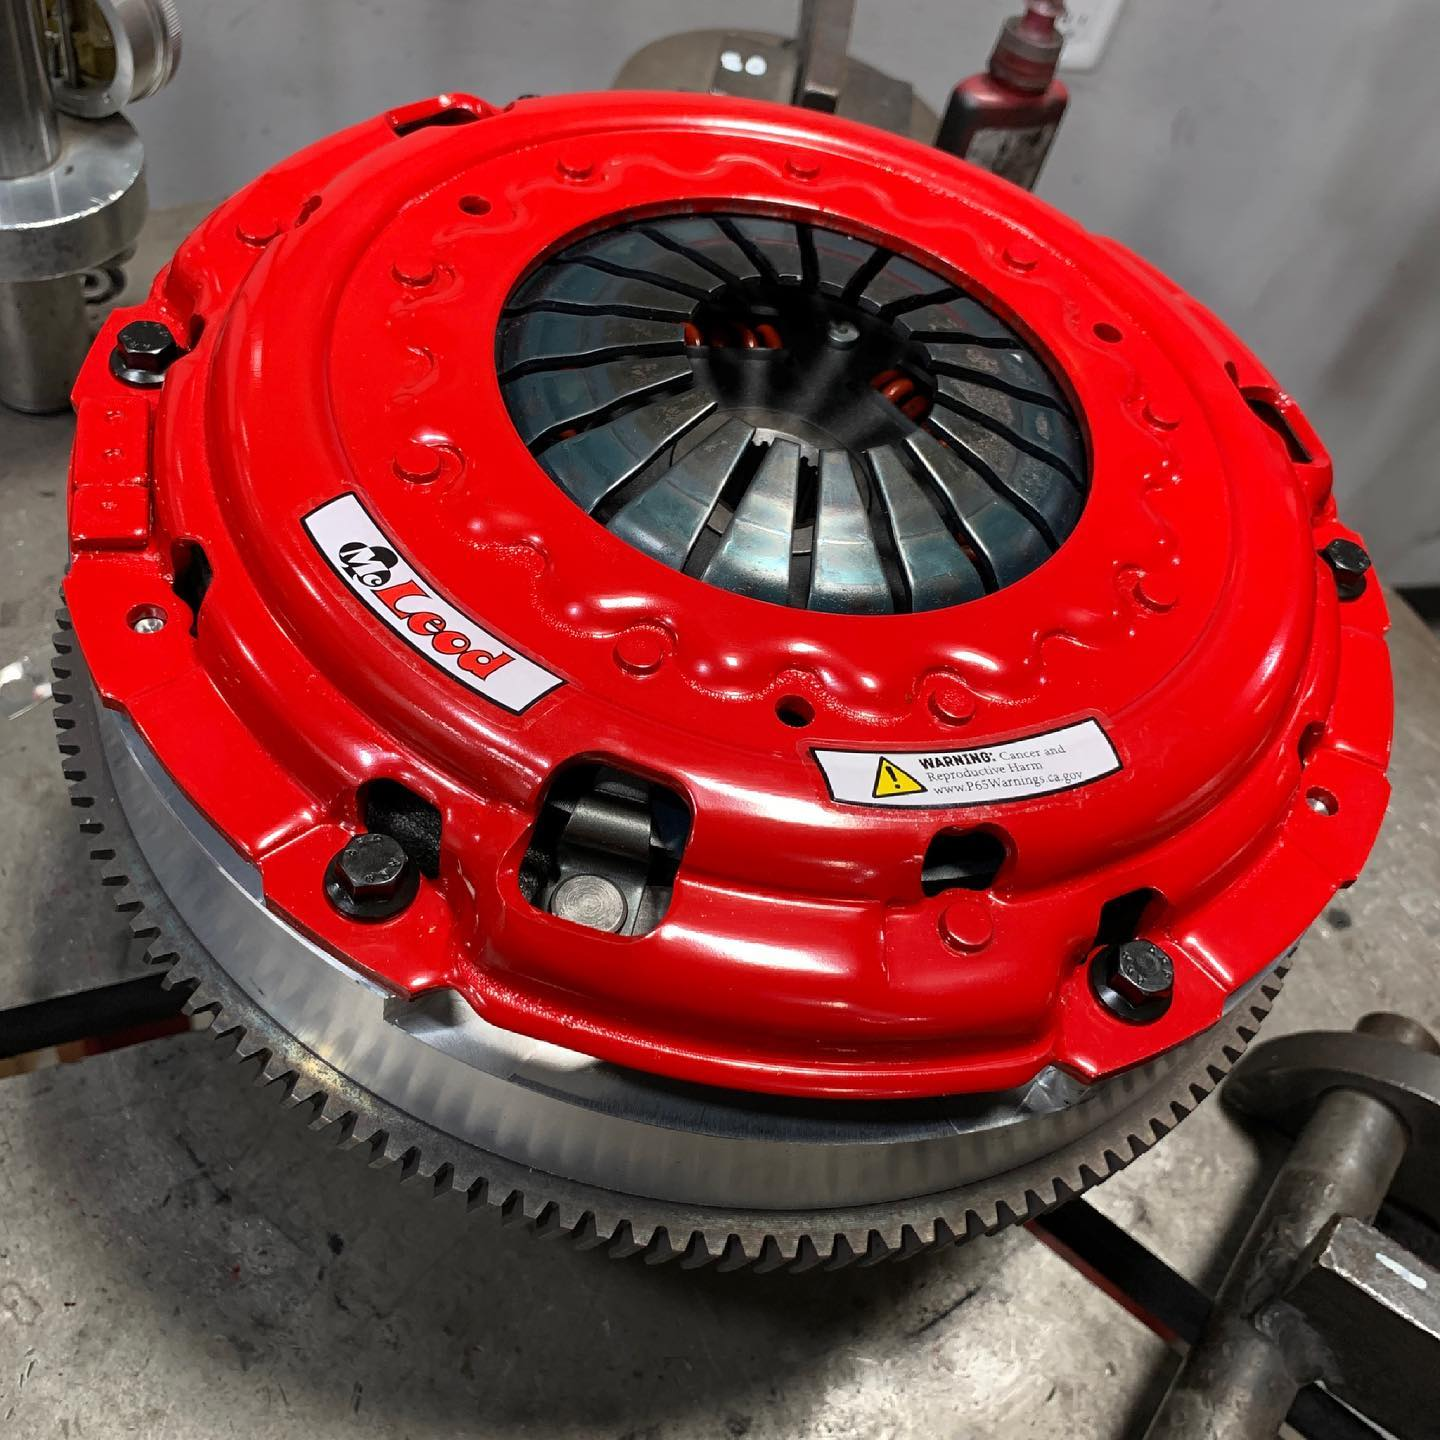 McLeod Has 1.5T Civic Clutch And Flywheel Combos In Stock – Get 'Em While They Are Hot!